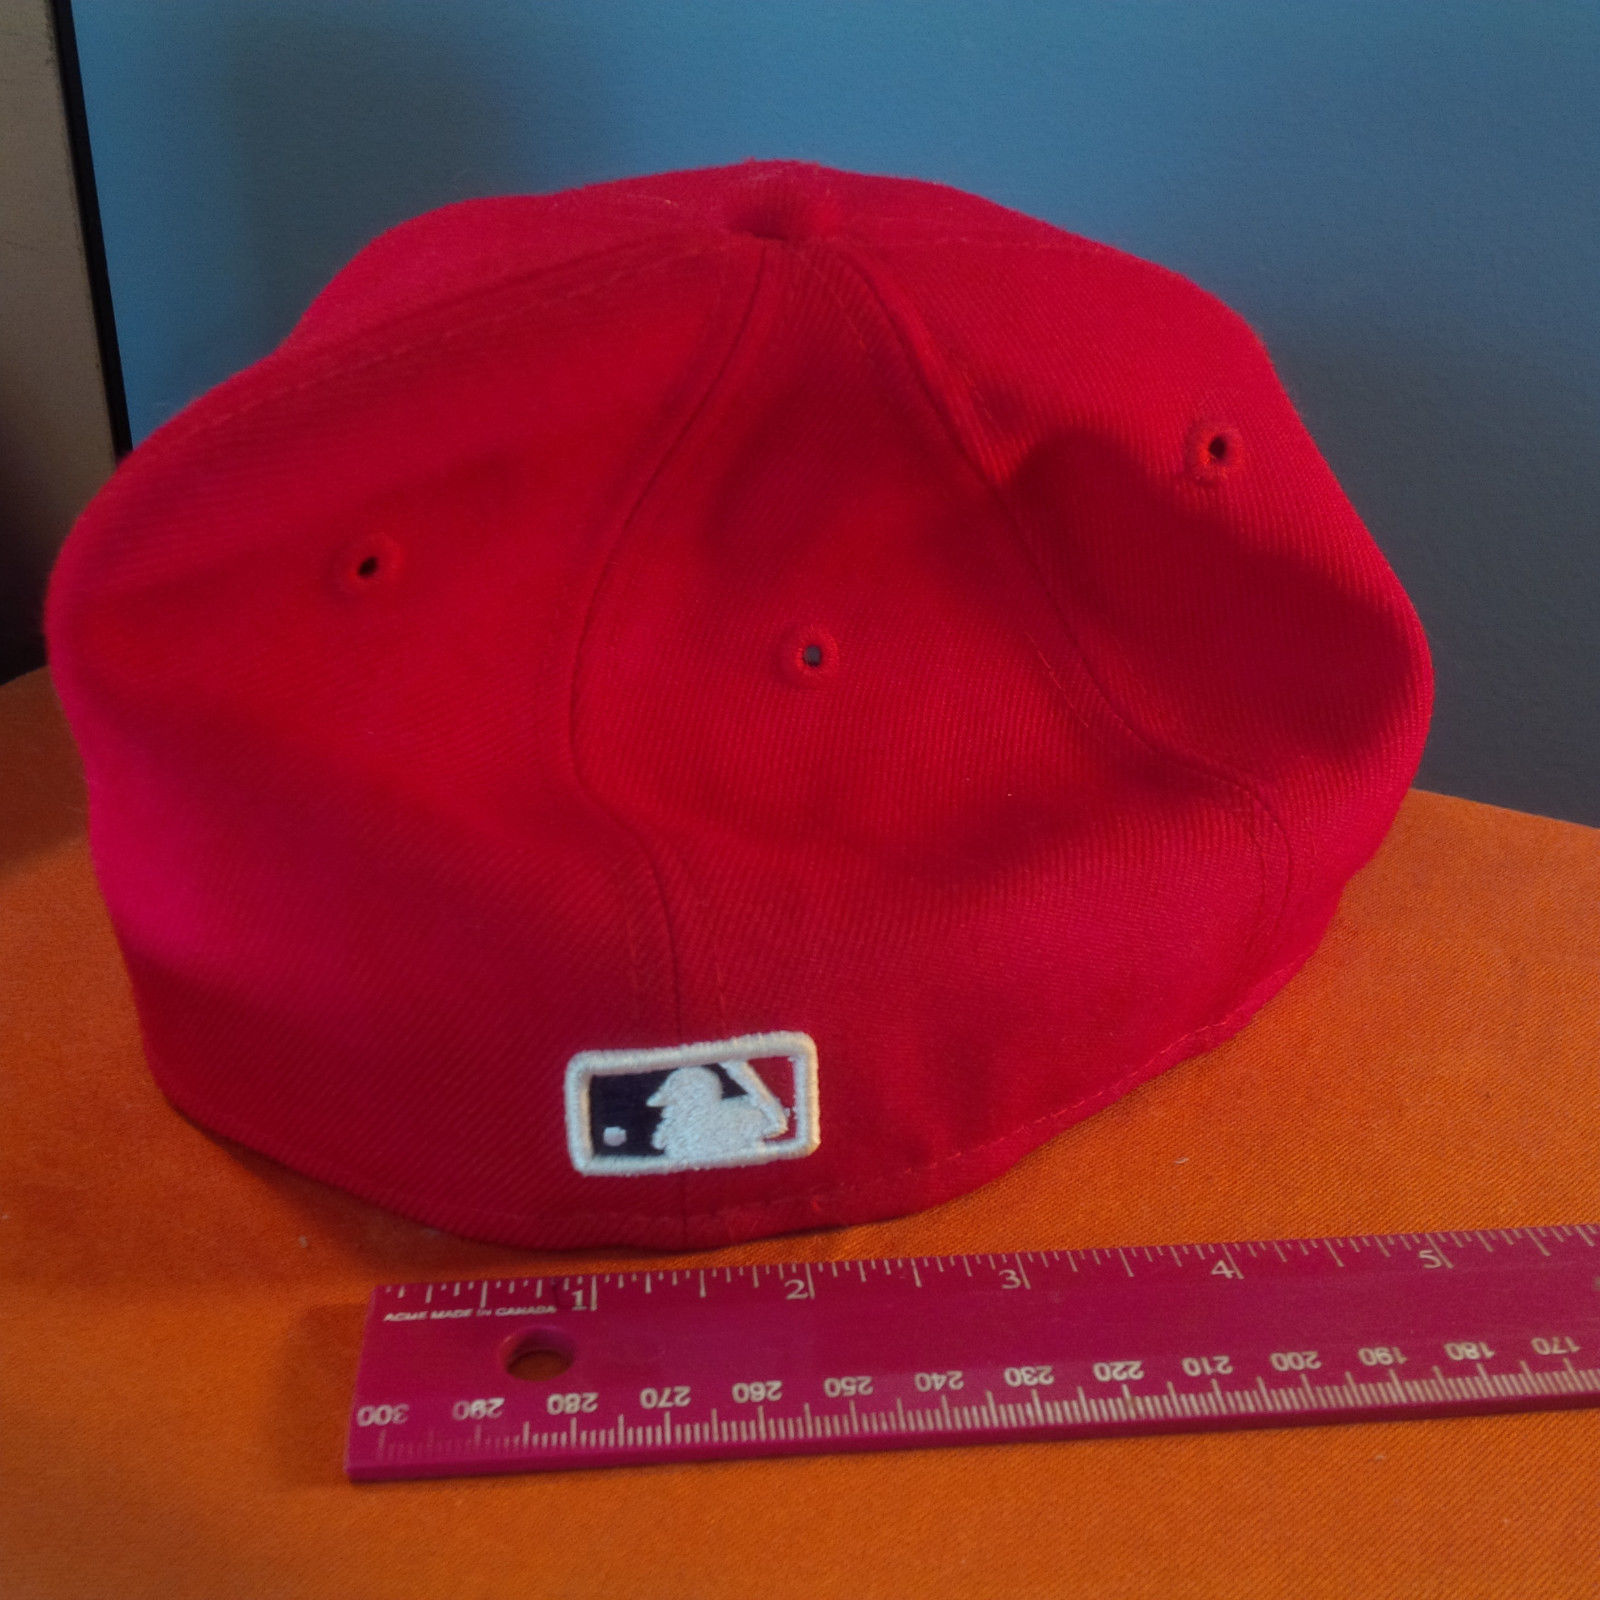 ST LOUIS CARDINALS NEW ERA 59FIFTY HAT 2007FITTED 6 3/4  BLACK  BOTTOM.(DD) image 4